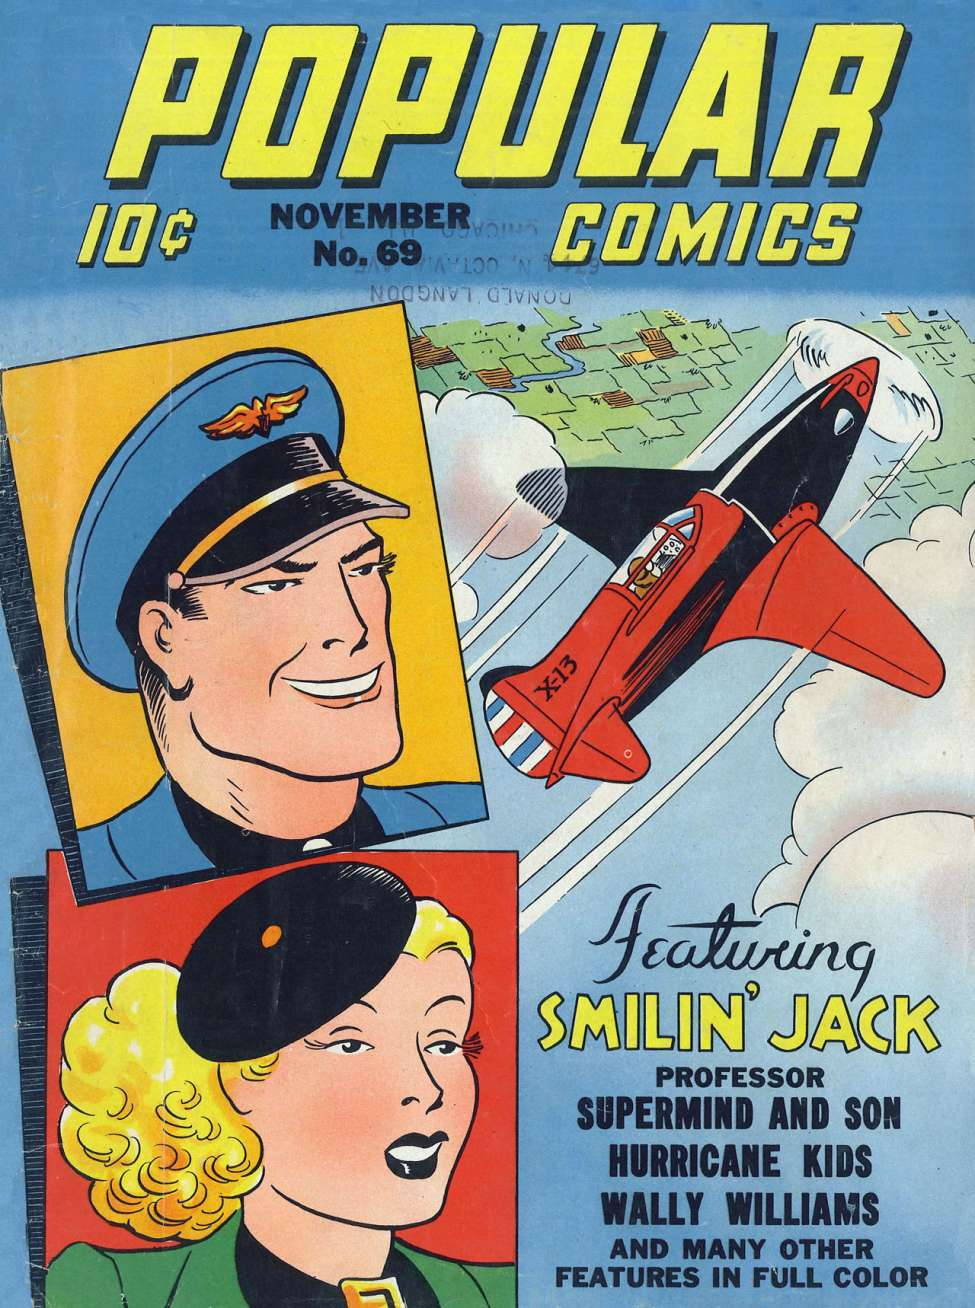 Comic Book Cover For Popular Comics #69